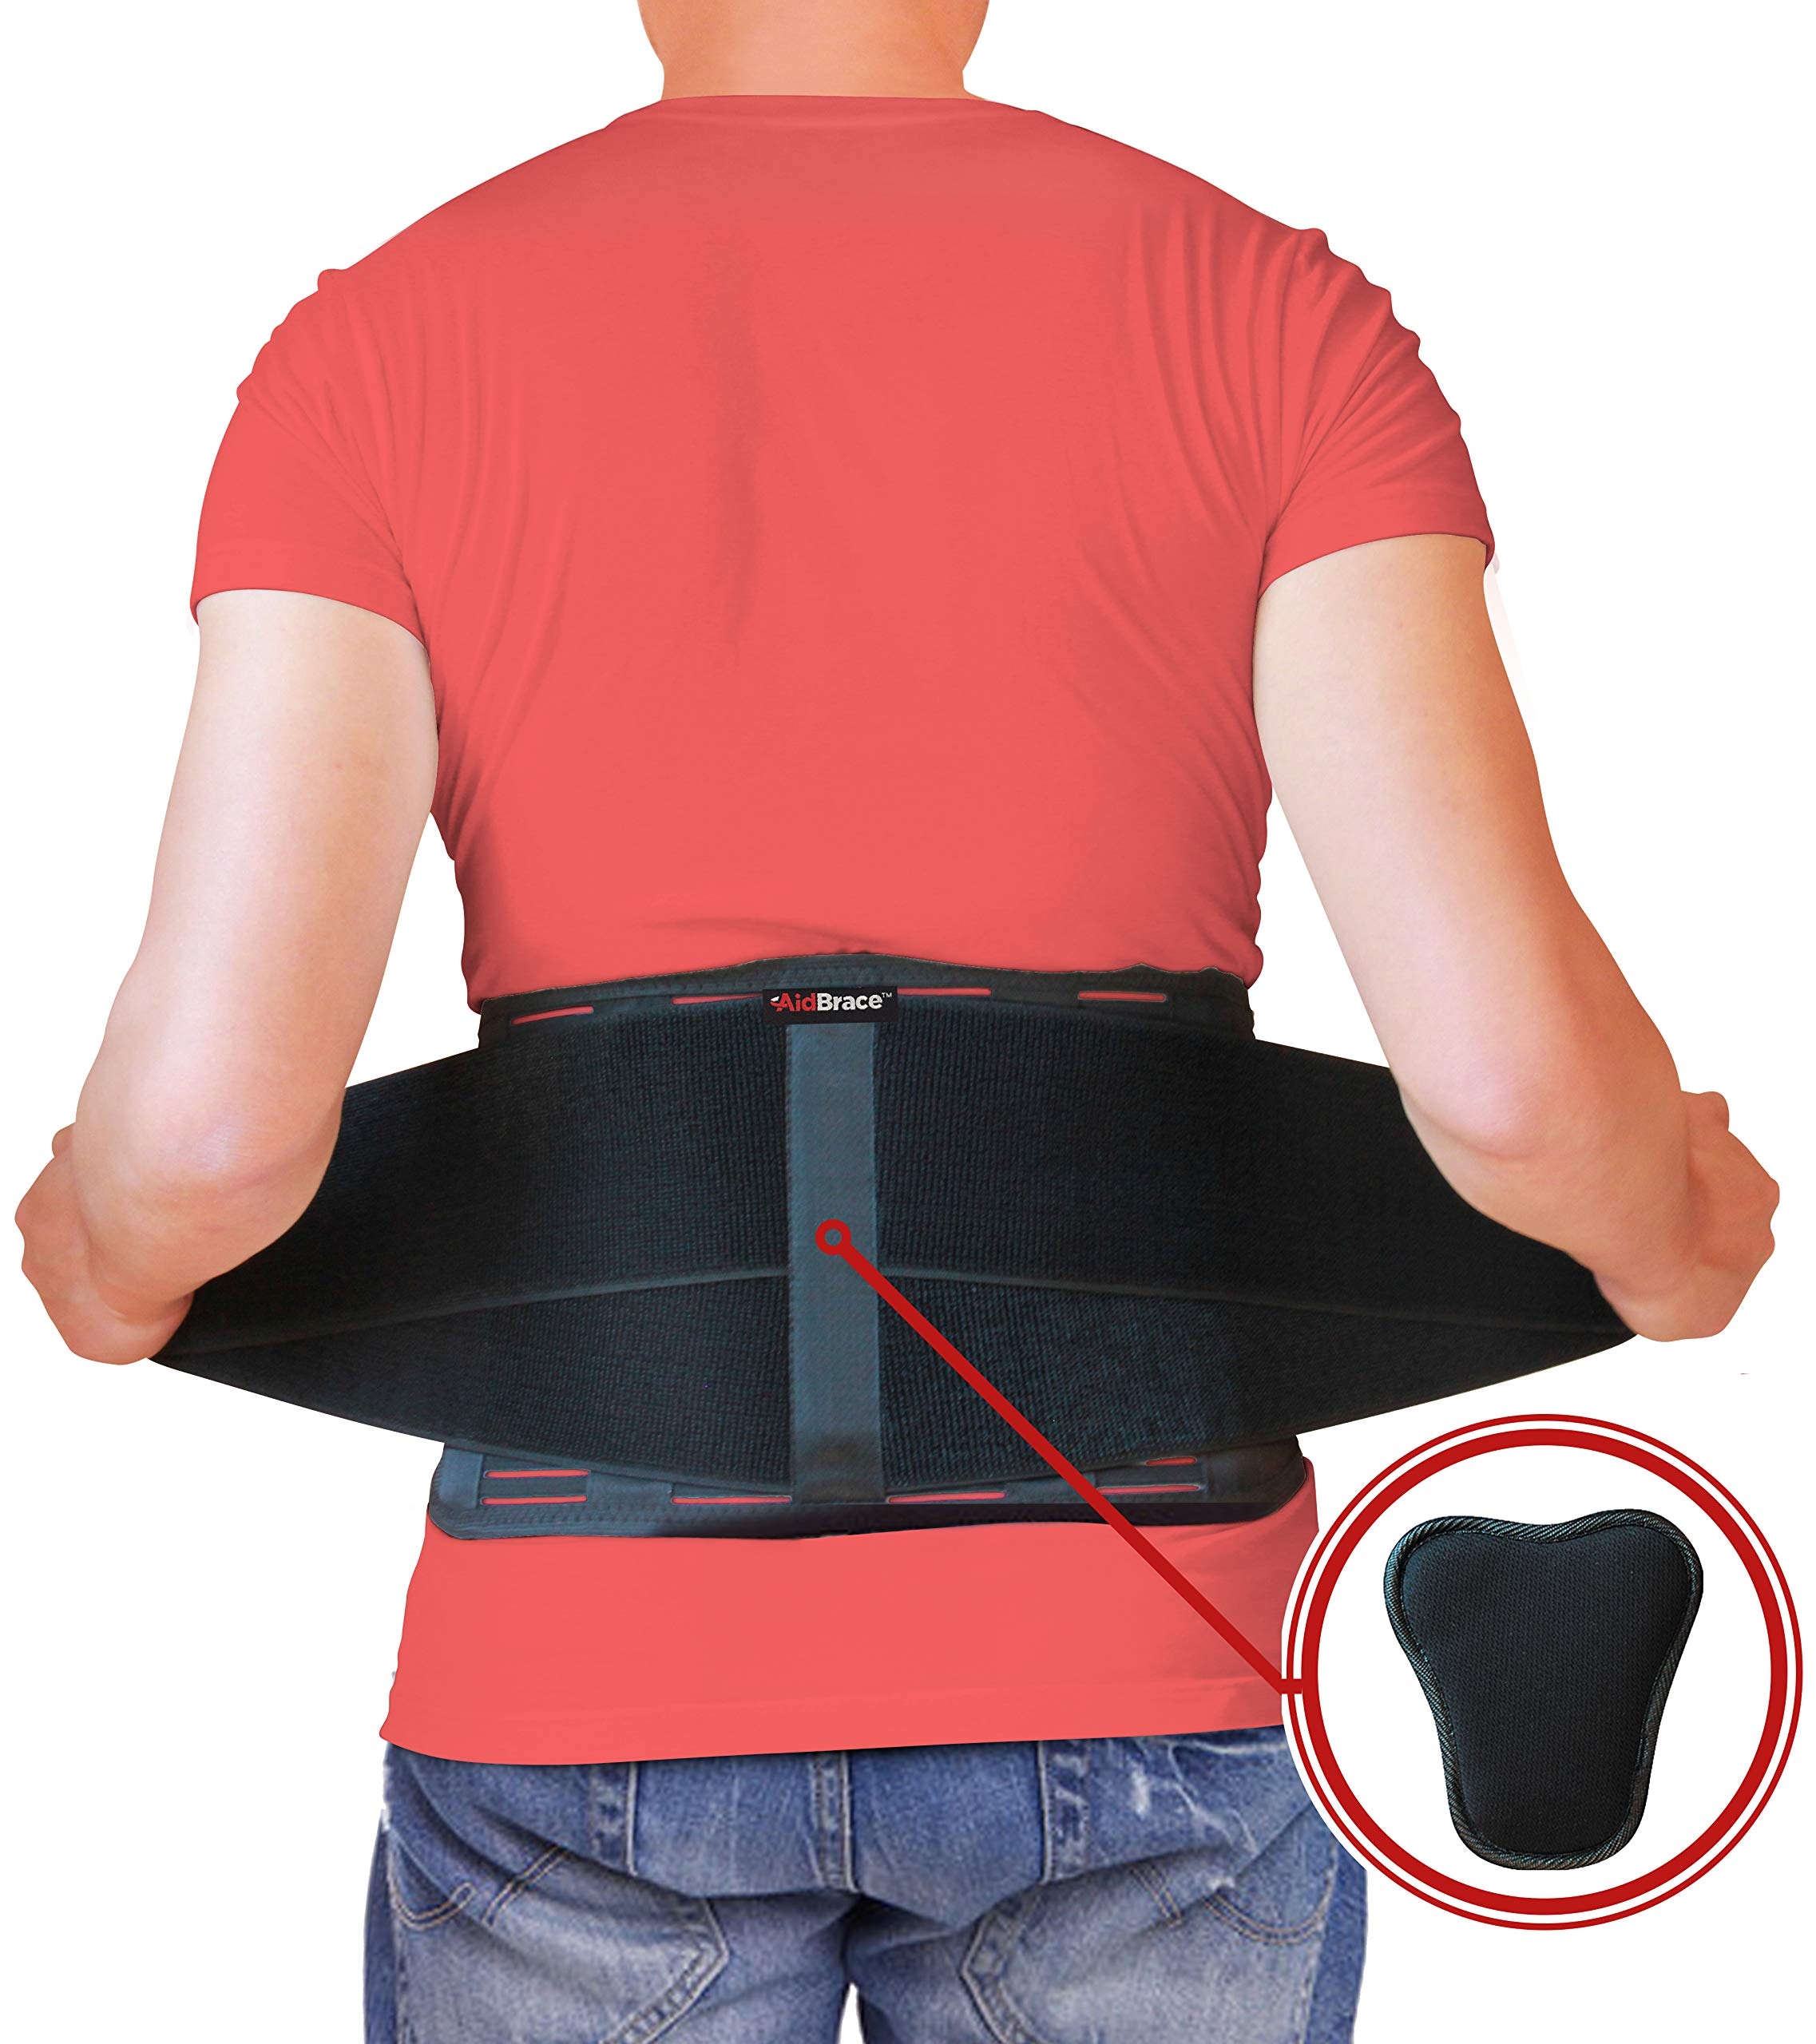 1abc8d3c9d49a Back Support Belt by AidBrace - Fast Lower Back Pain Relief - Breathable  Back Mesh with